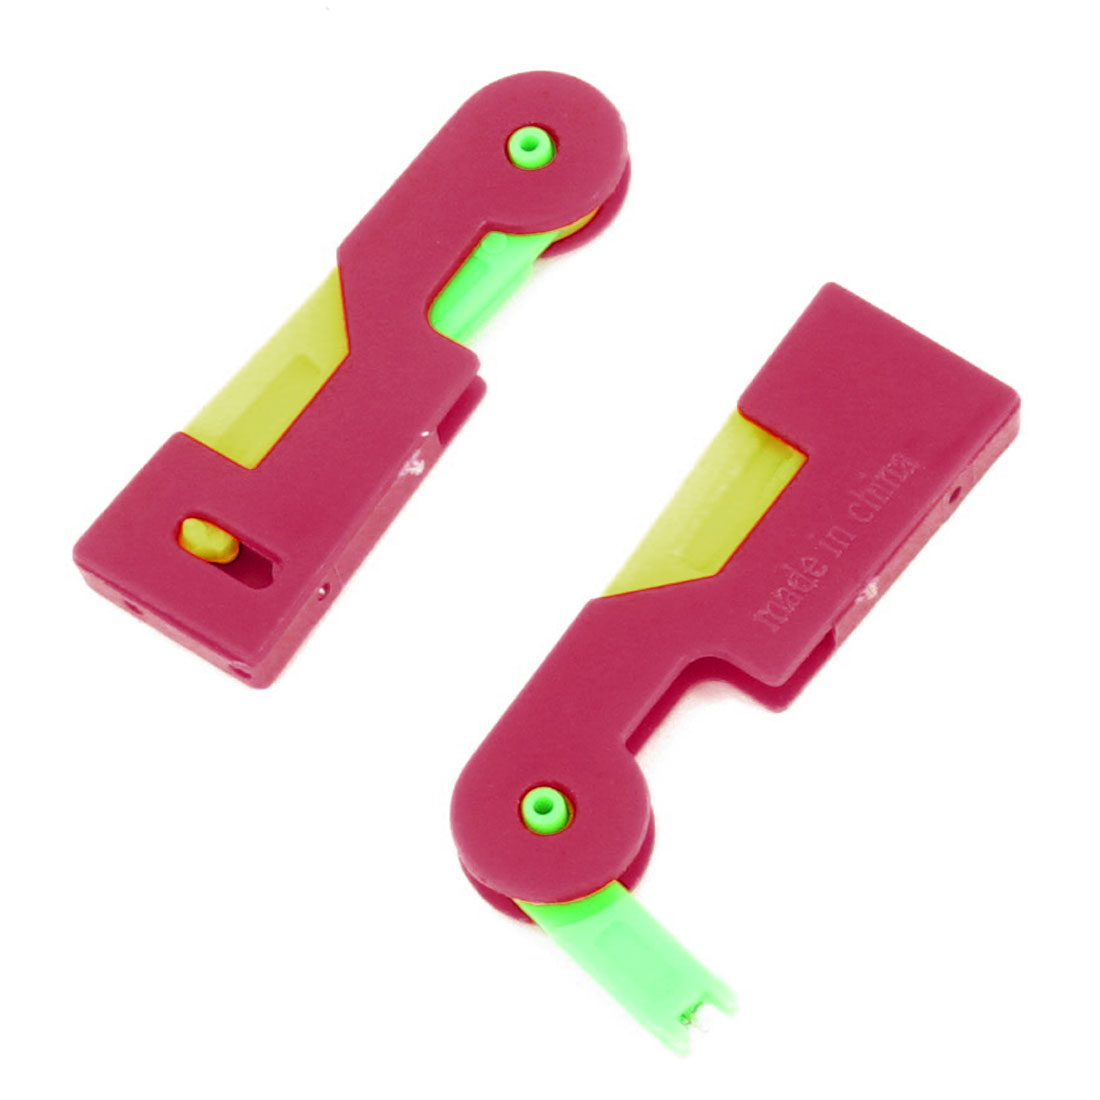 "Unique Bargains 2.6"" Long Tri-color Automatic Needle Guide Threader 2pcs"